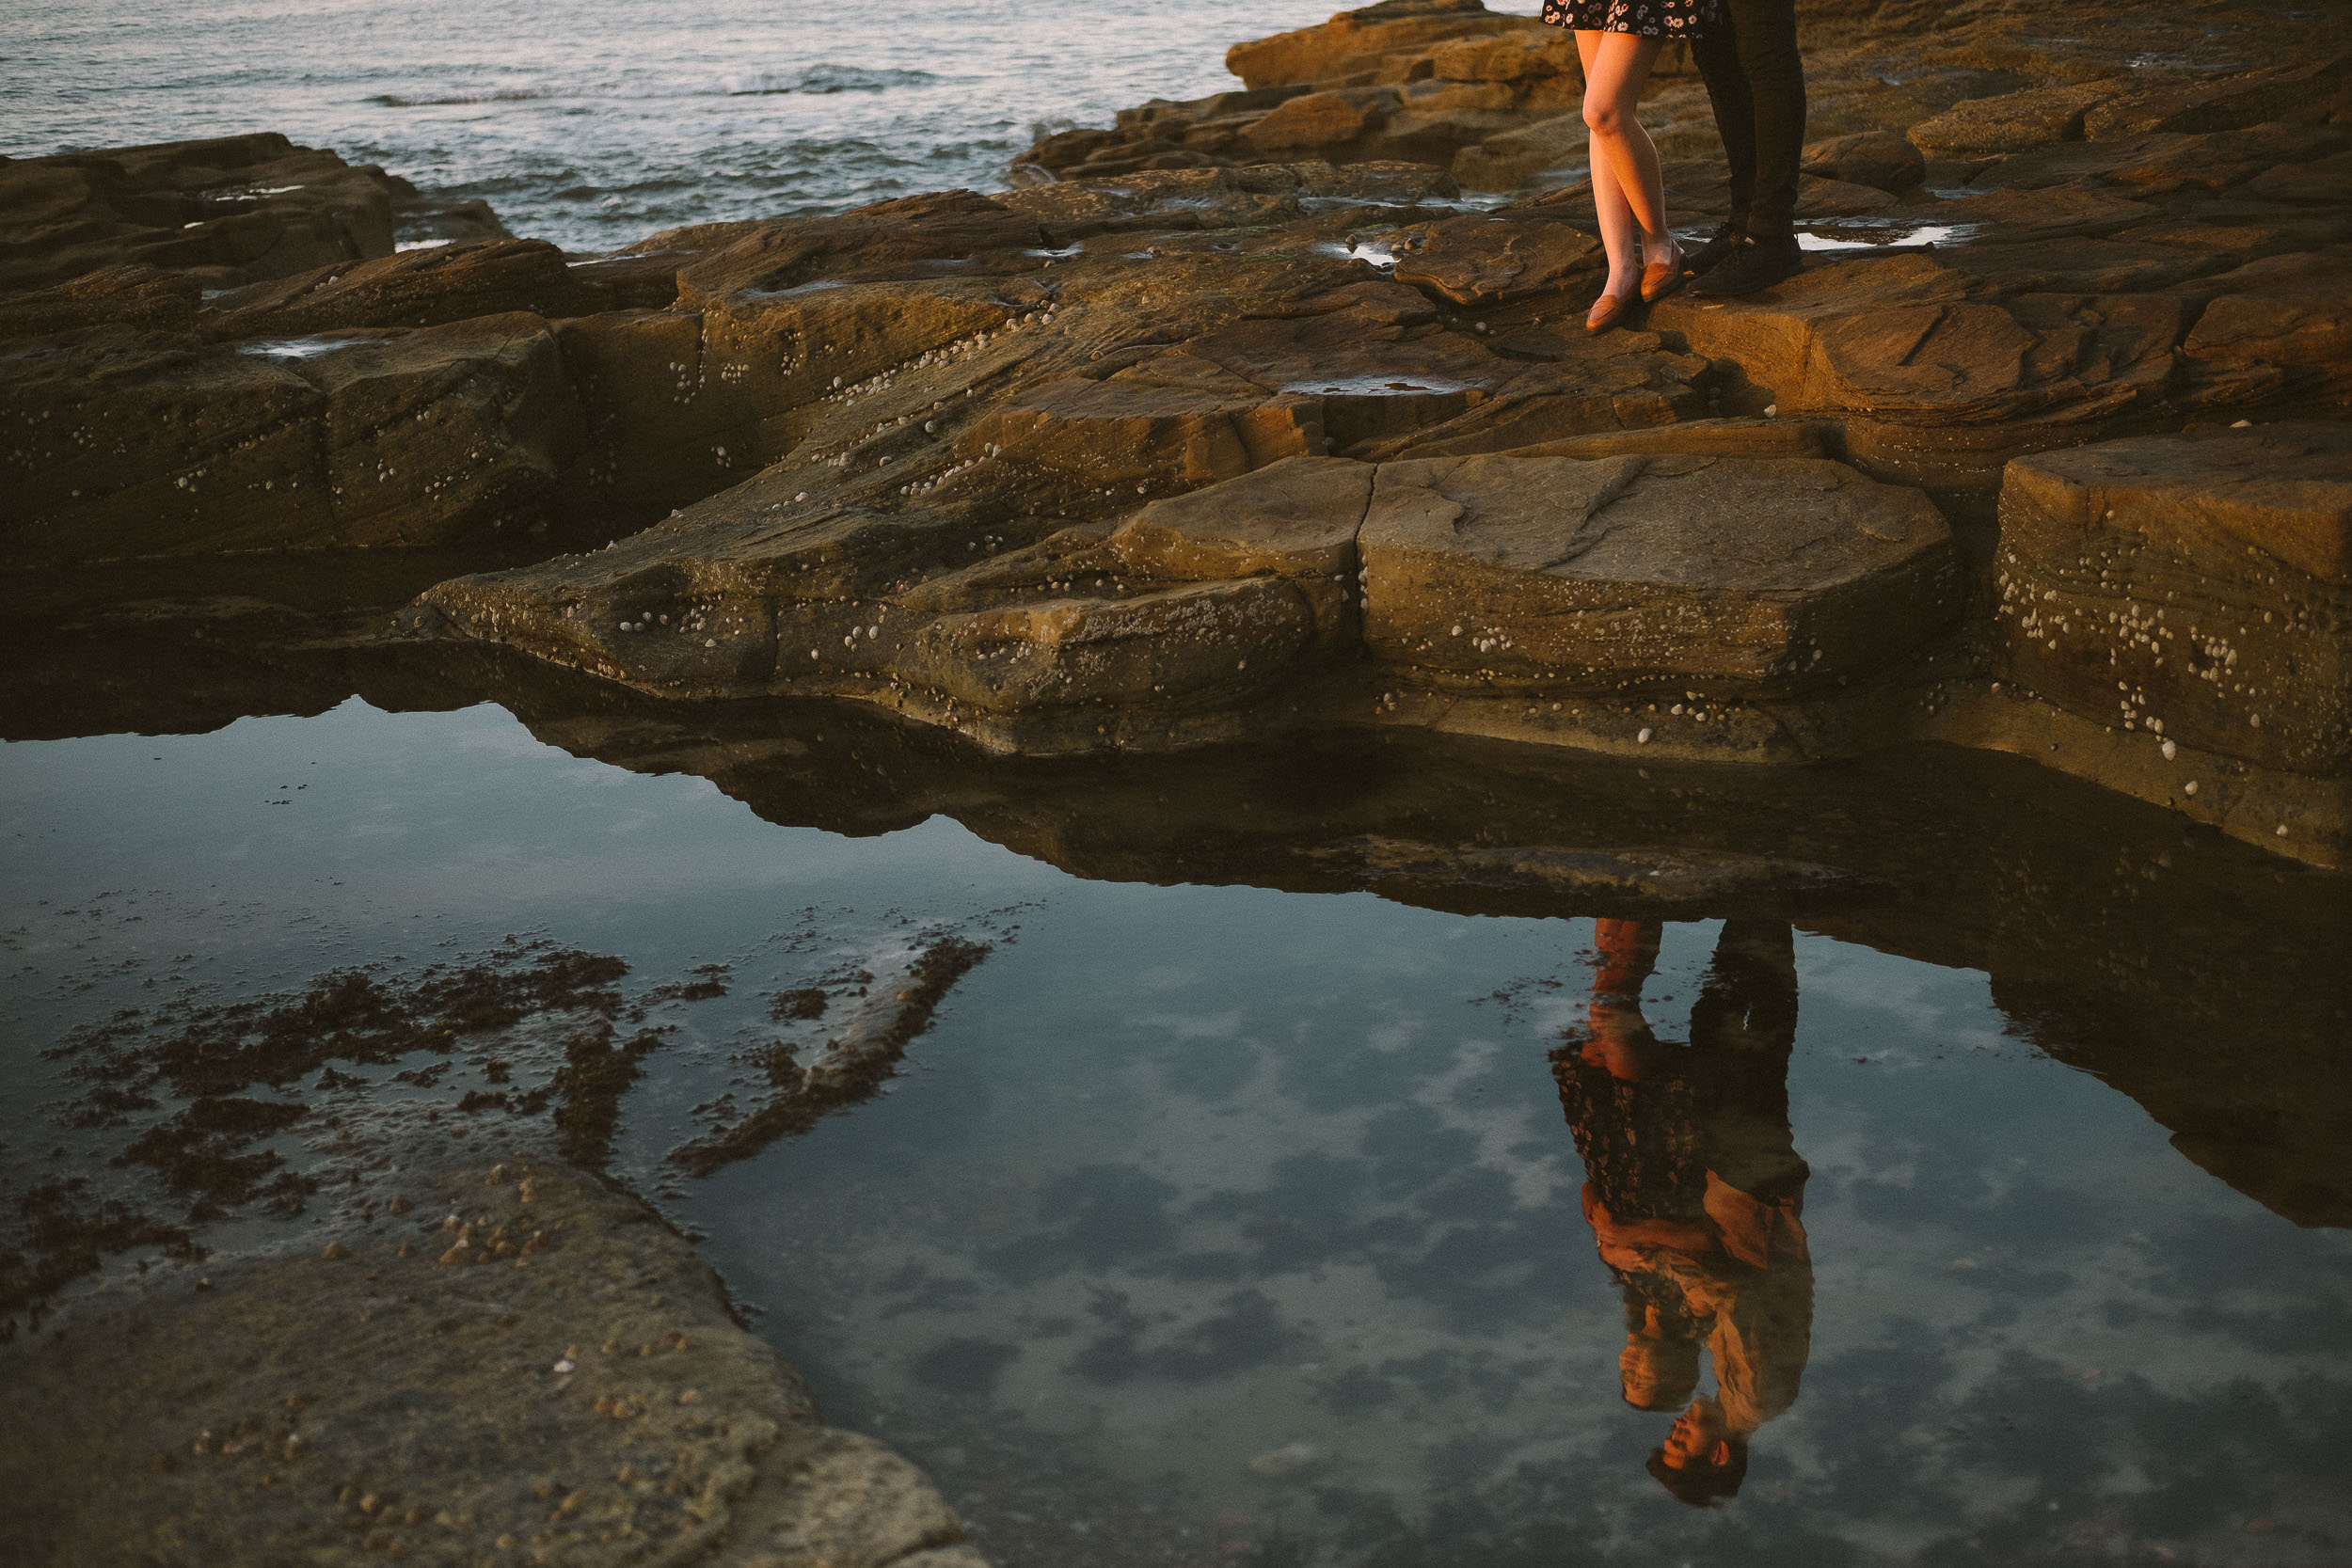 Cuddling couple reflected in rock pool